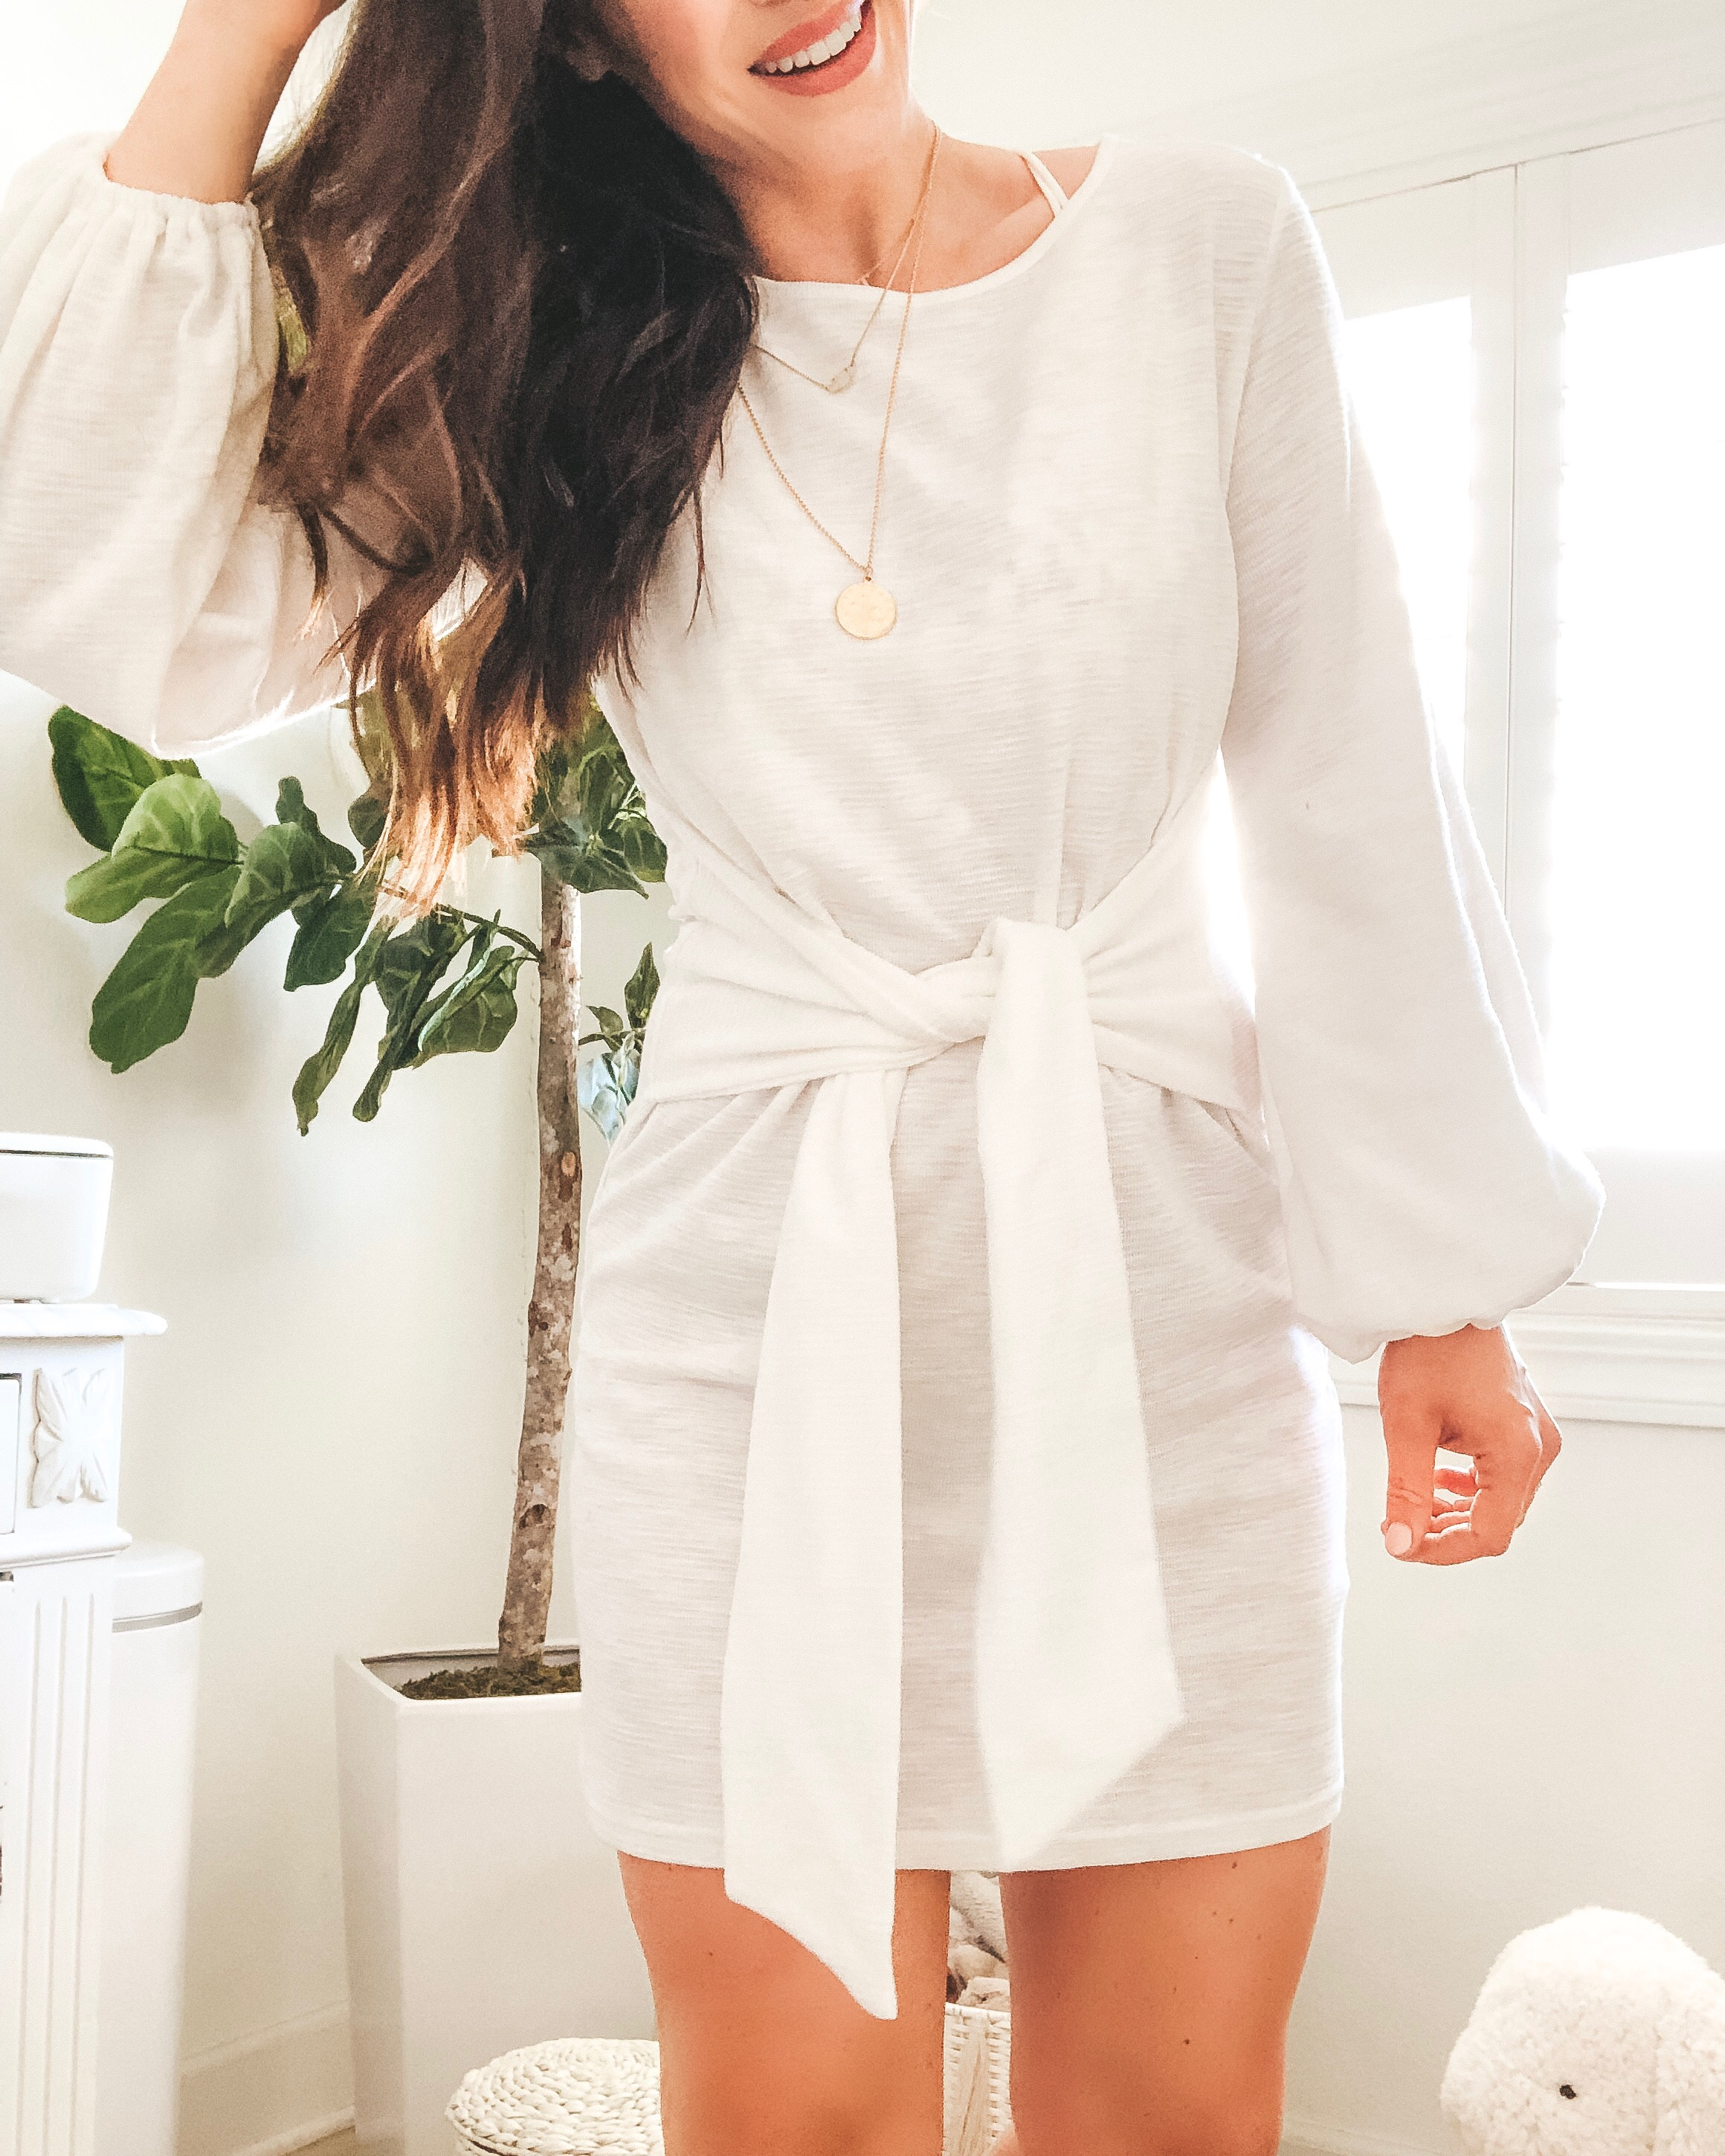 Amazon fashion finds for summer.  10 under $35 amazon women's clothing pieces.  Cute tie waist dress.  White dress with flattering waist.